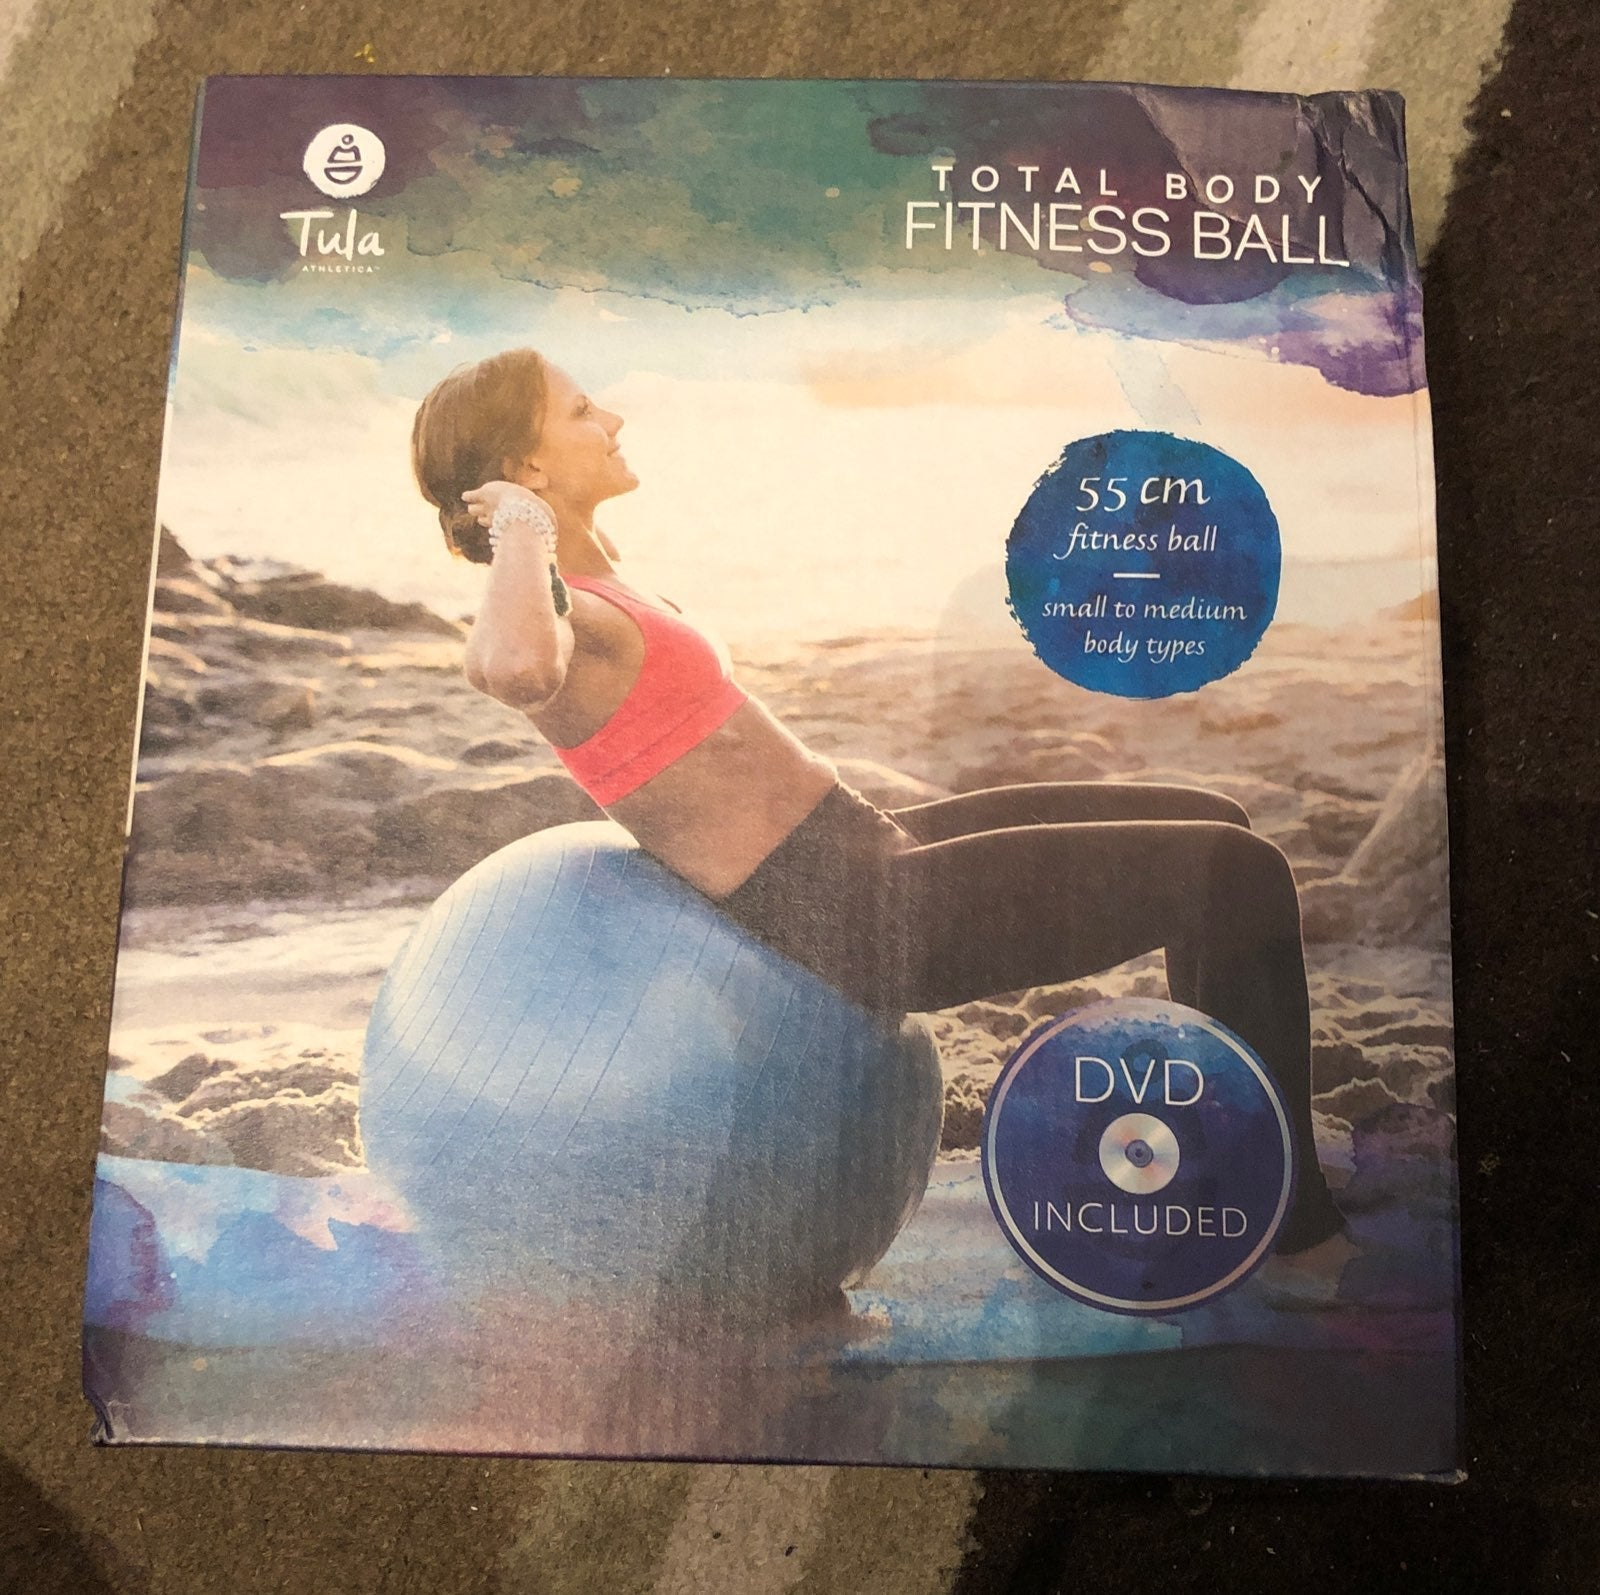 Total Body Fitness Ball